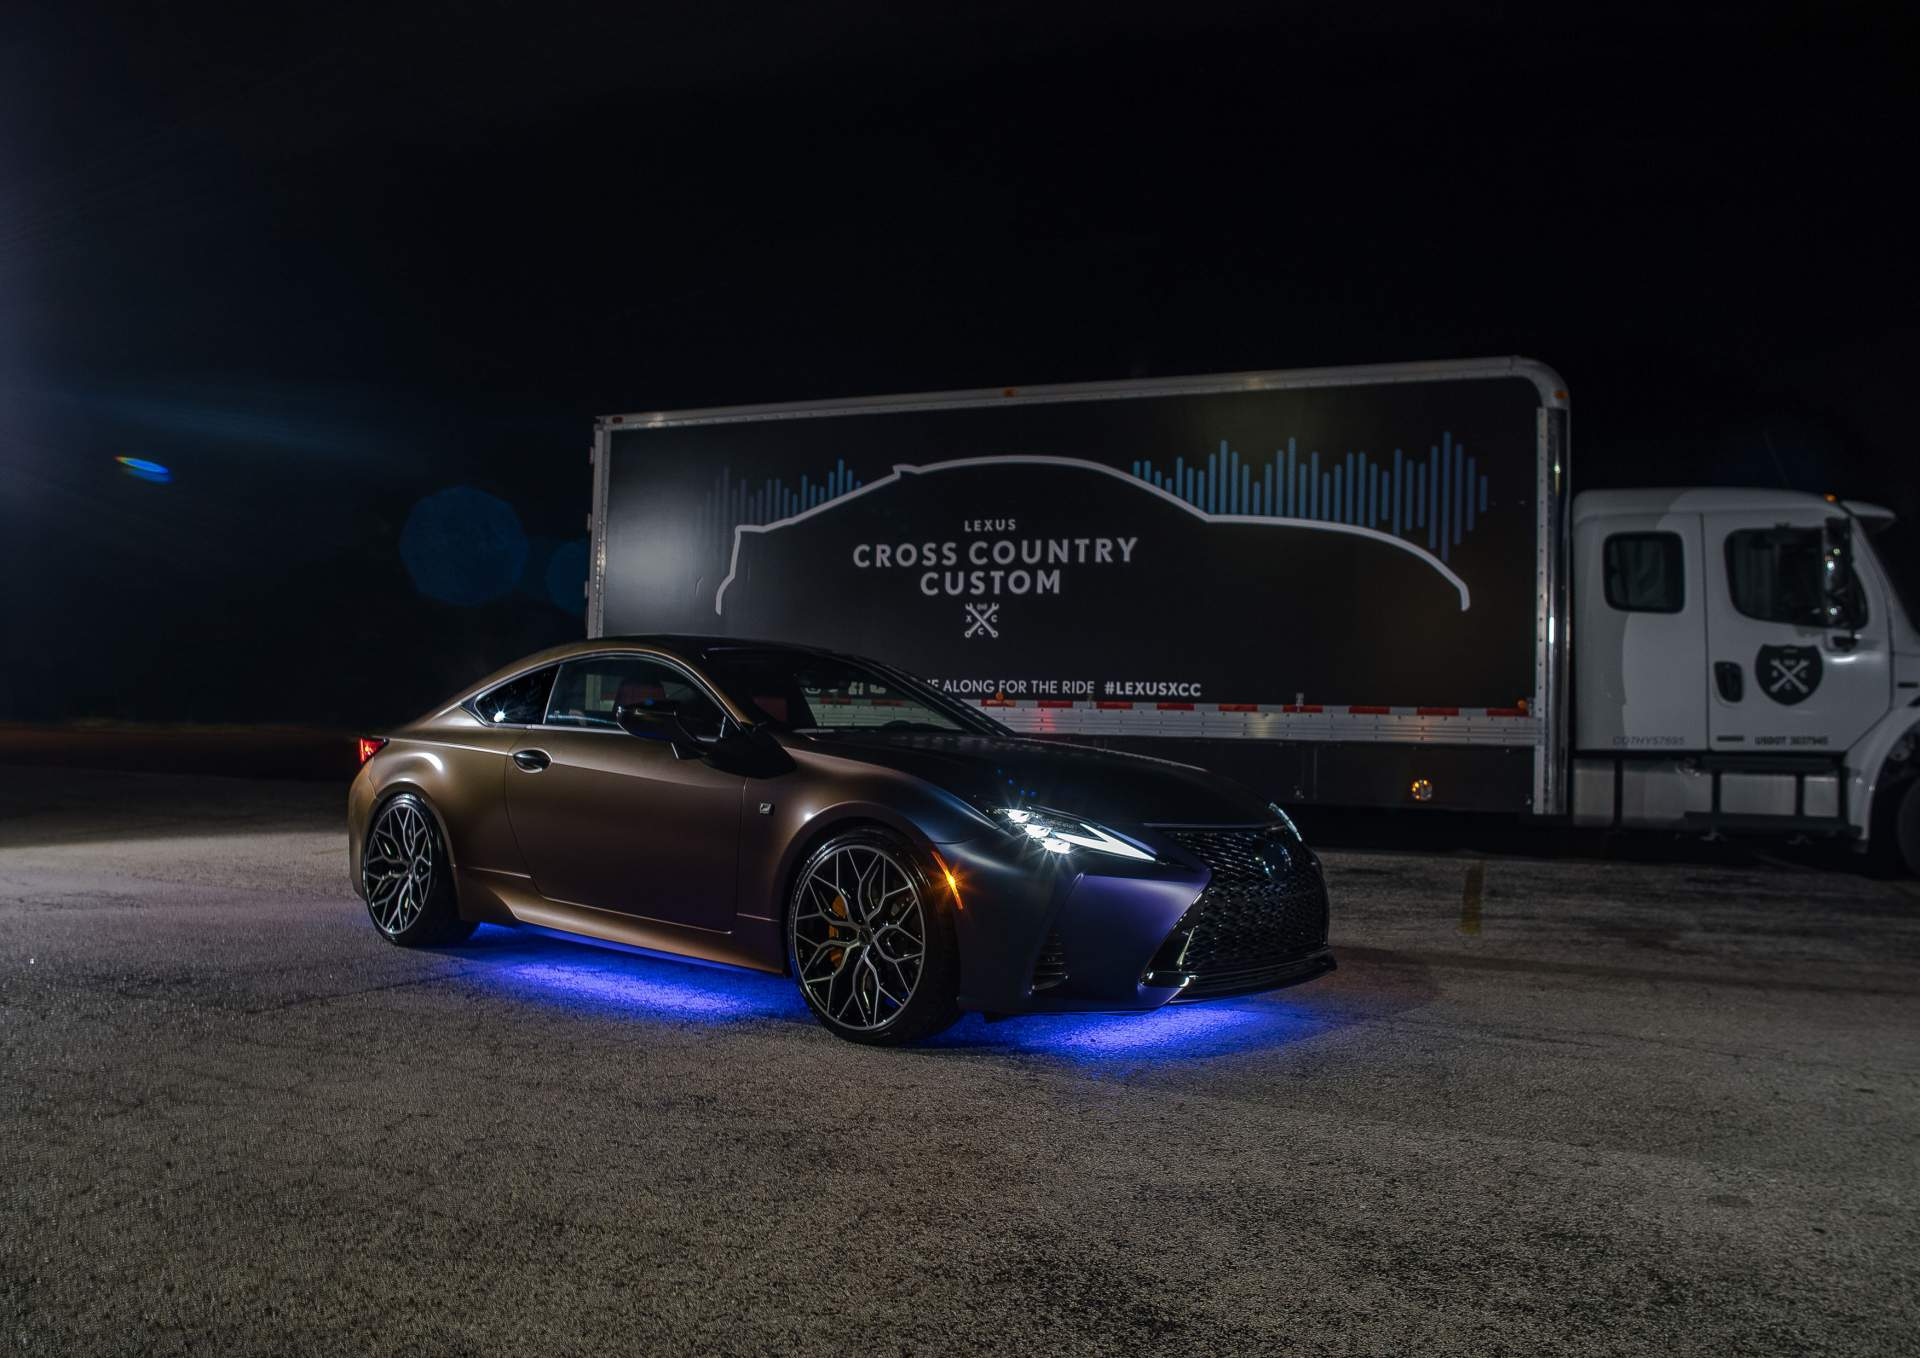 2019-lexus-rc-cross-country-custom-concept.jpg